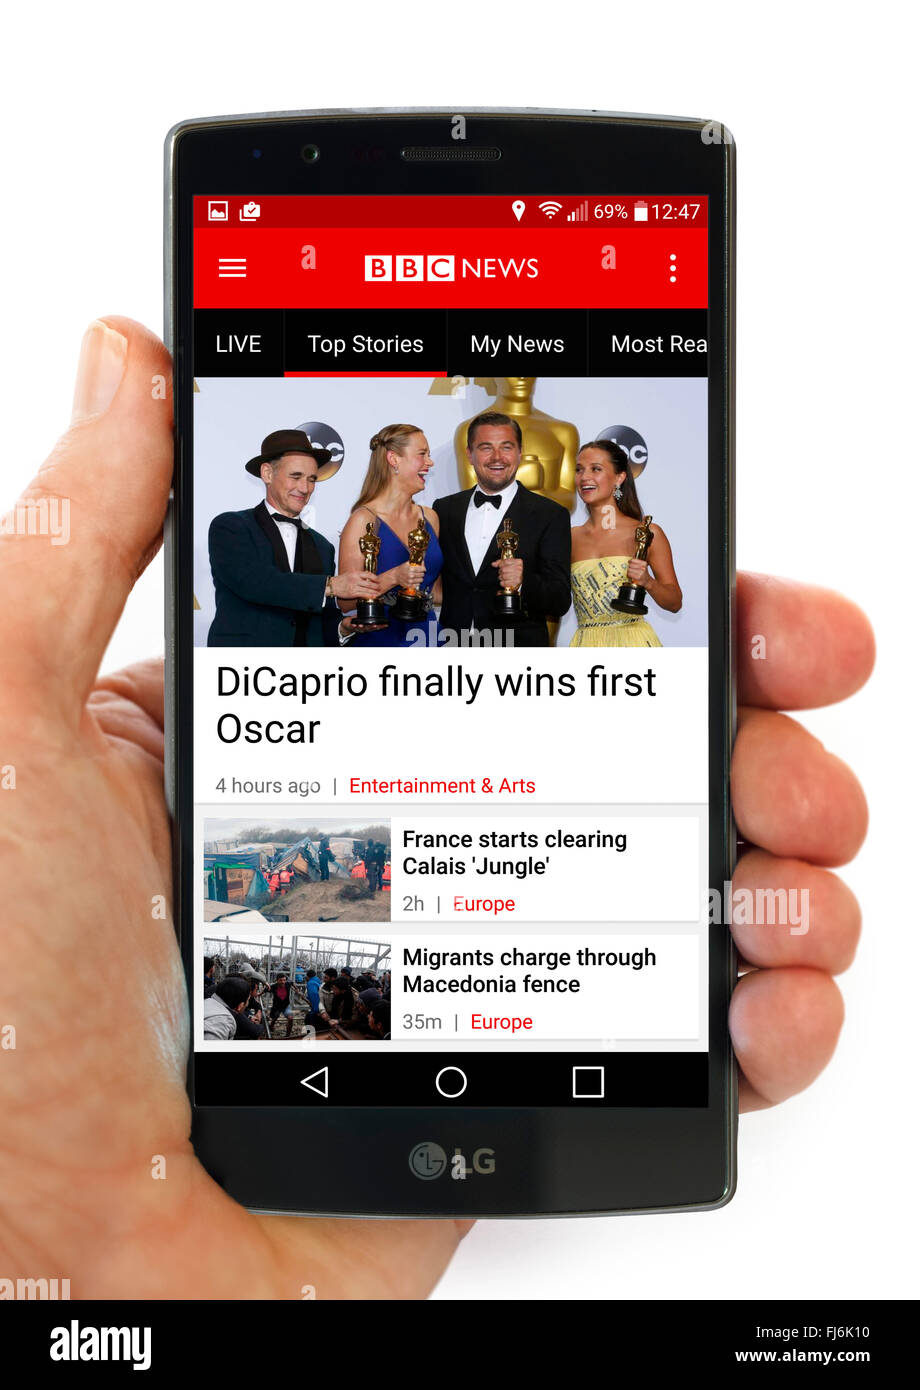 The BBC News App on an LG G4 5.5 inch Android smartphone - Stock Image